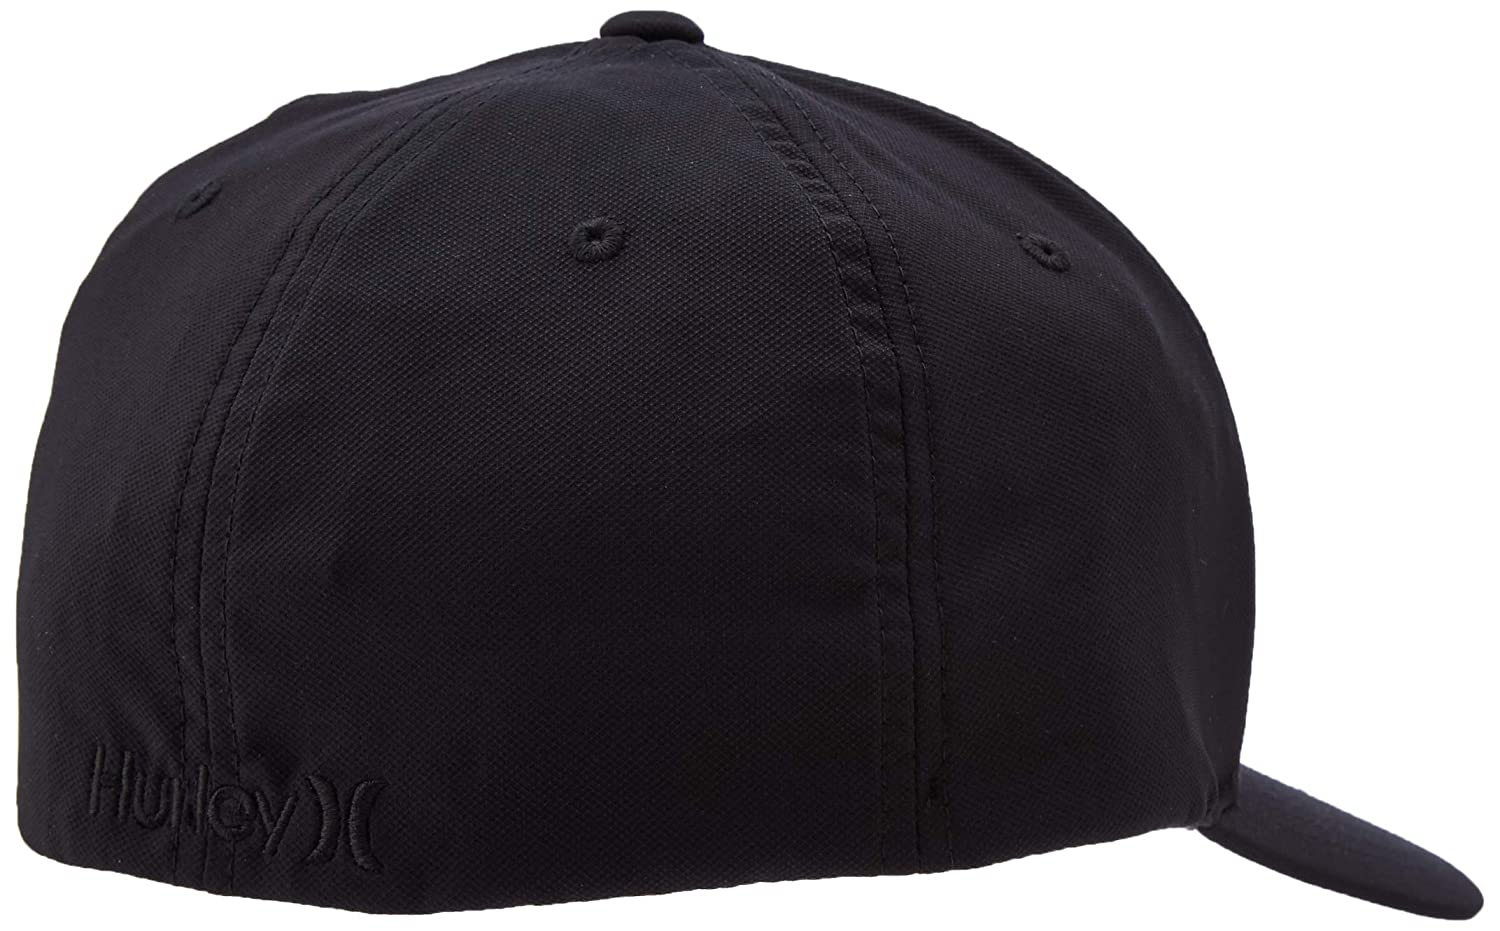 Hurley M Dri-fit One/&Only 2.0 Hat Casquettes Homme